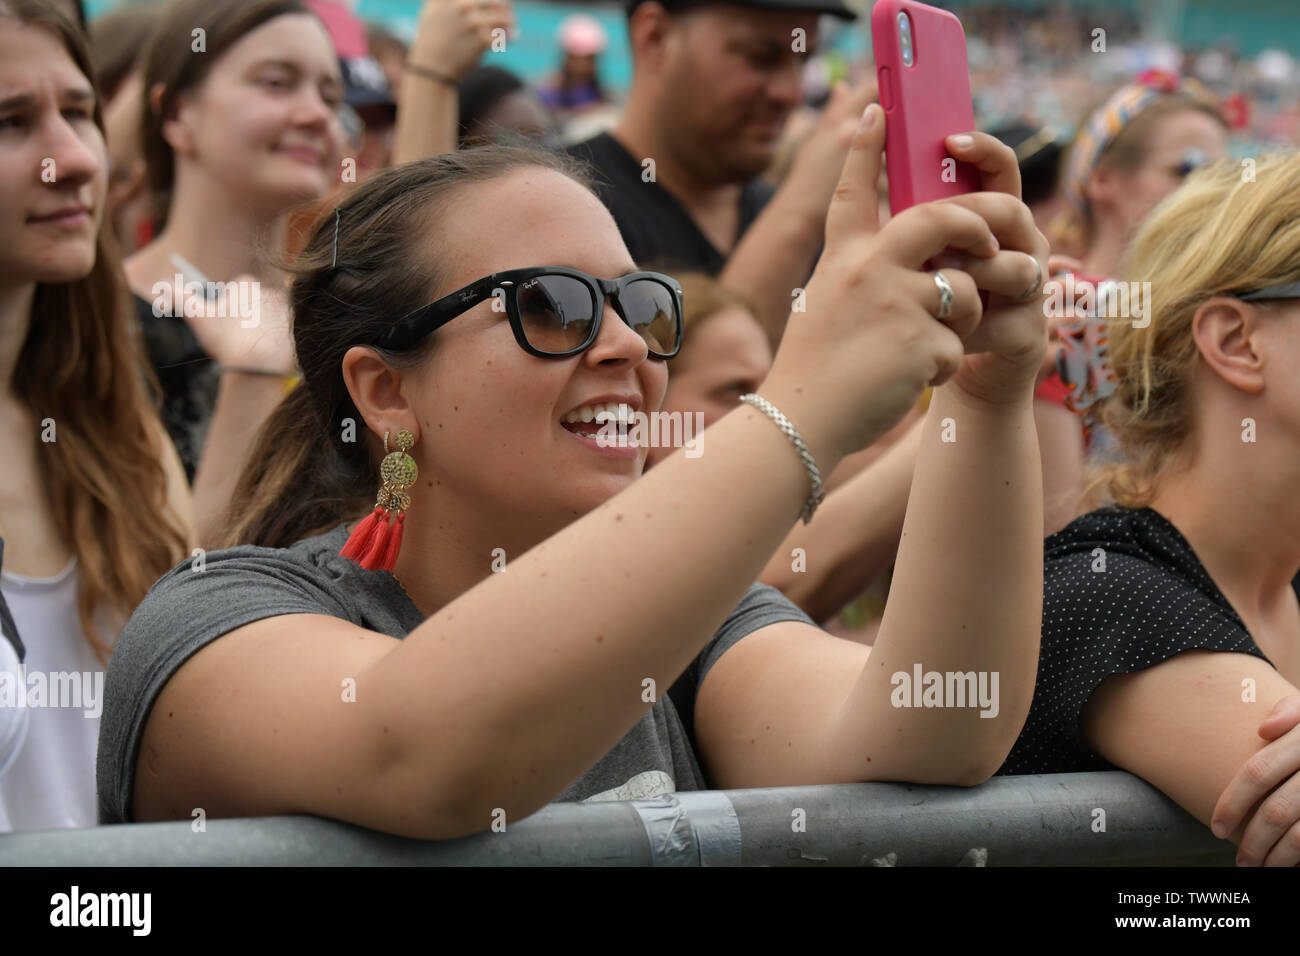 London, UK. 23rd June, 2019. Selfies obsessive at West End Live 2019 - Day 2 in Trafalgar Square, on 23 June 2019, London, UK. Credit: Picture Capital/Alamy Live News - Stock Image